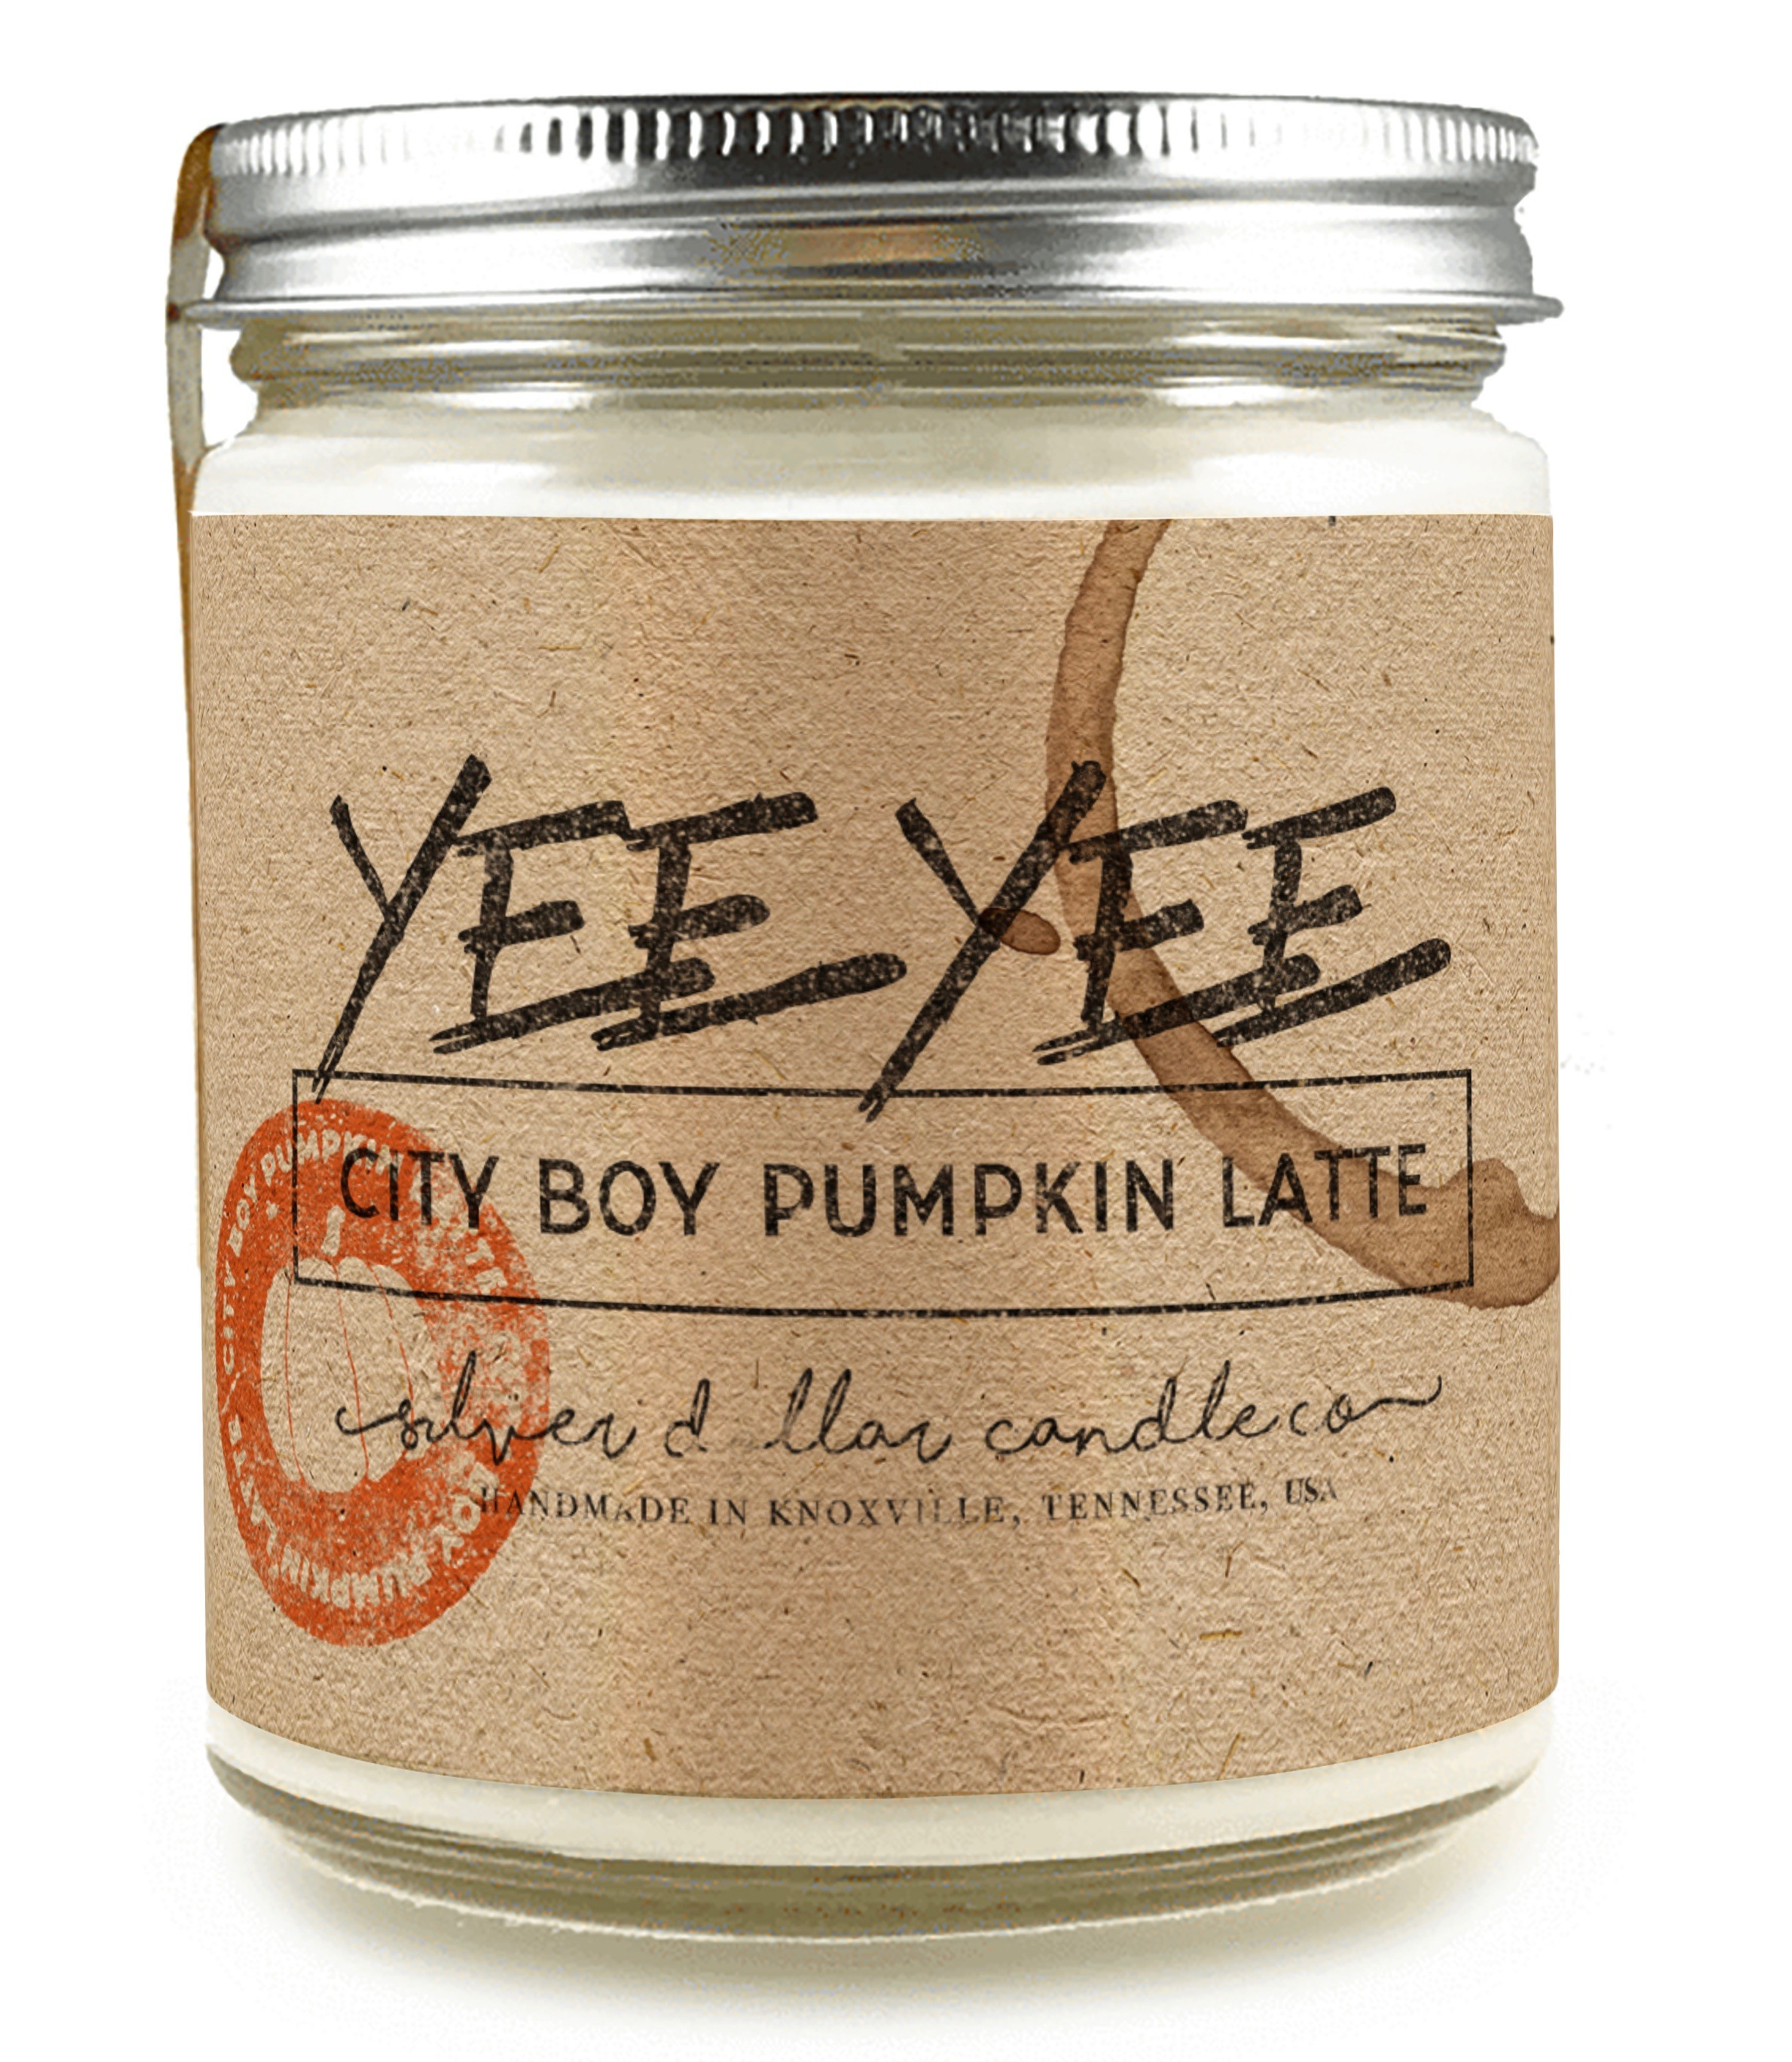 Yee Yee Candle (City Boy Pumpkin Latte)